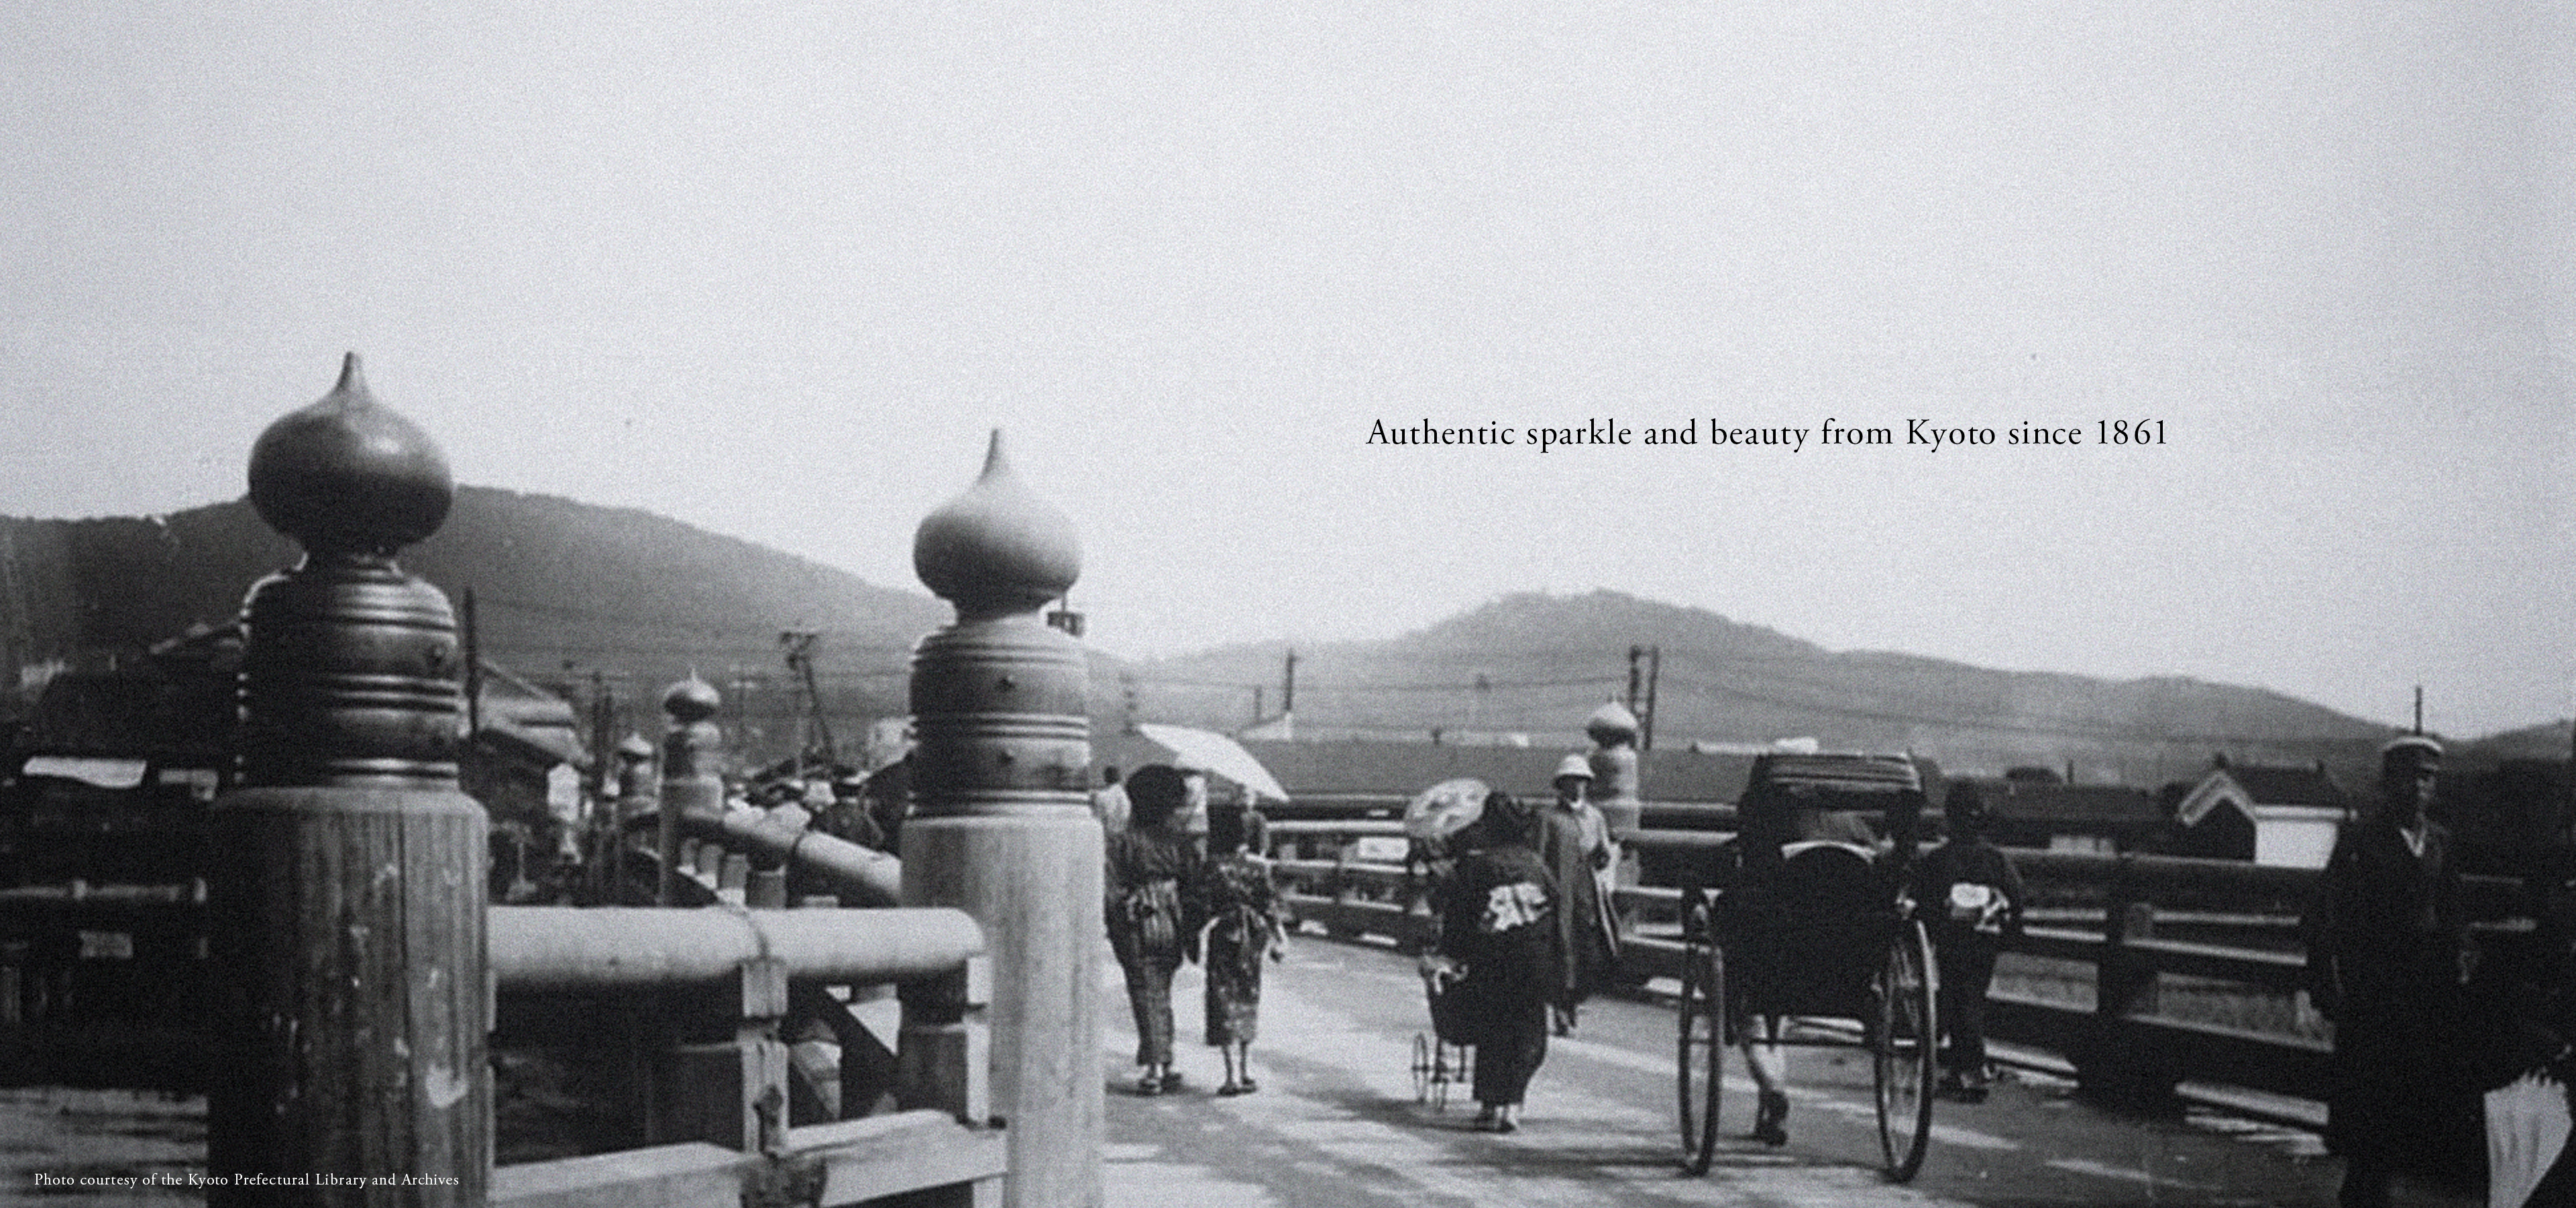 Authentic sparkle and beauty from Kyoto since 1861